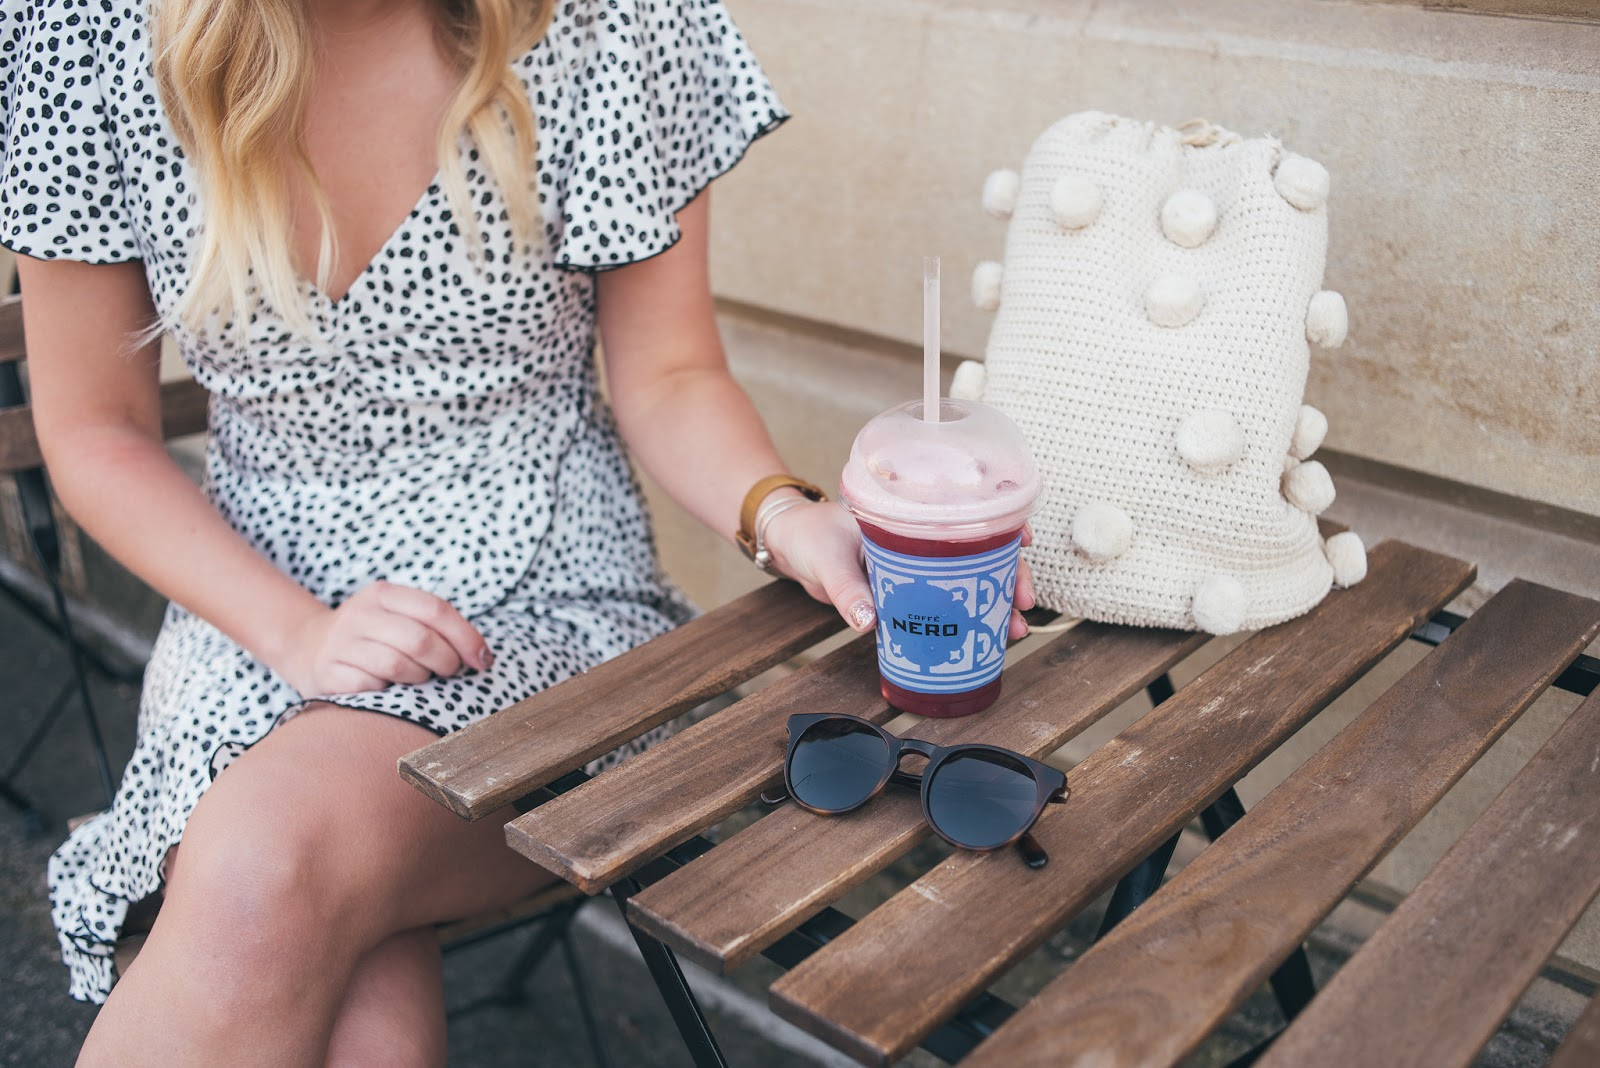 Zara Polka Dot Wrap Dress, Pom Pom Backpack, Finlay Co Percy Sunglasses and Smoothie